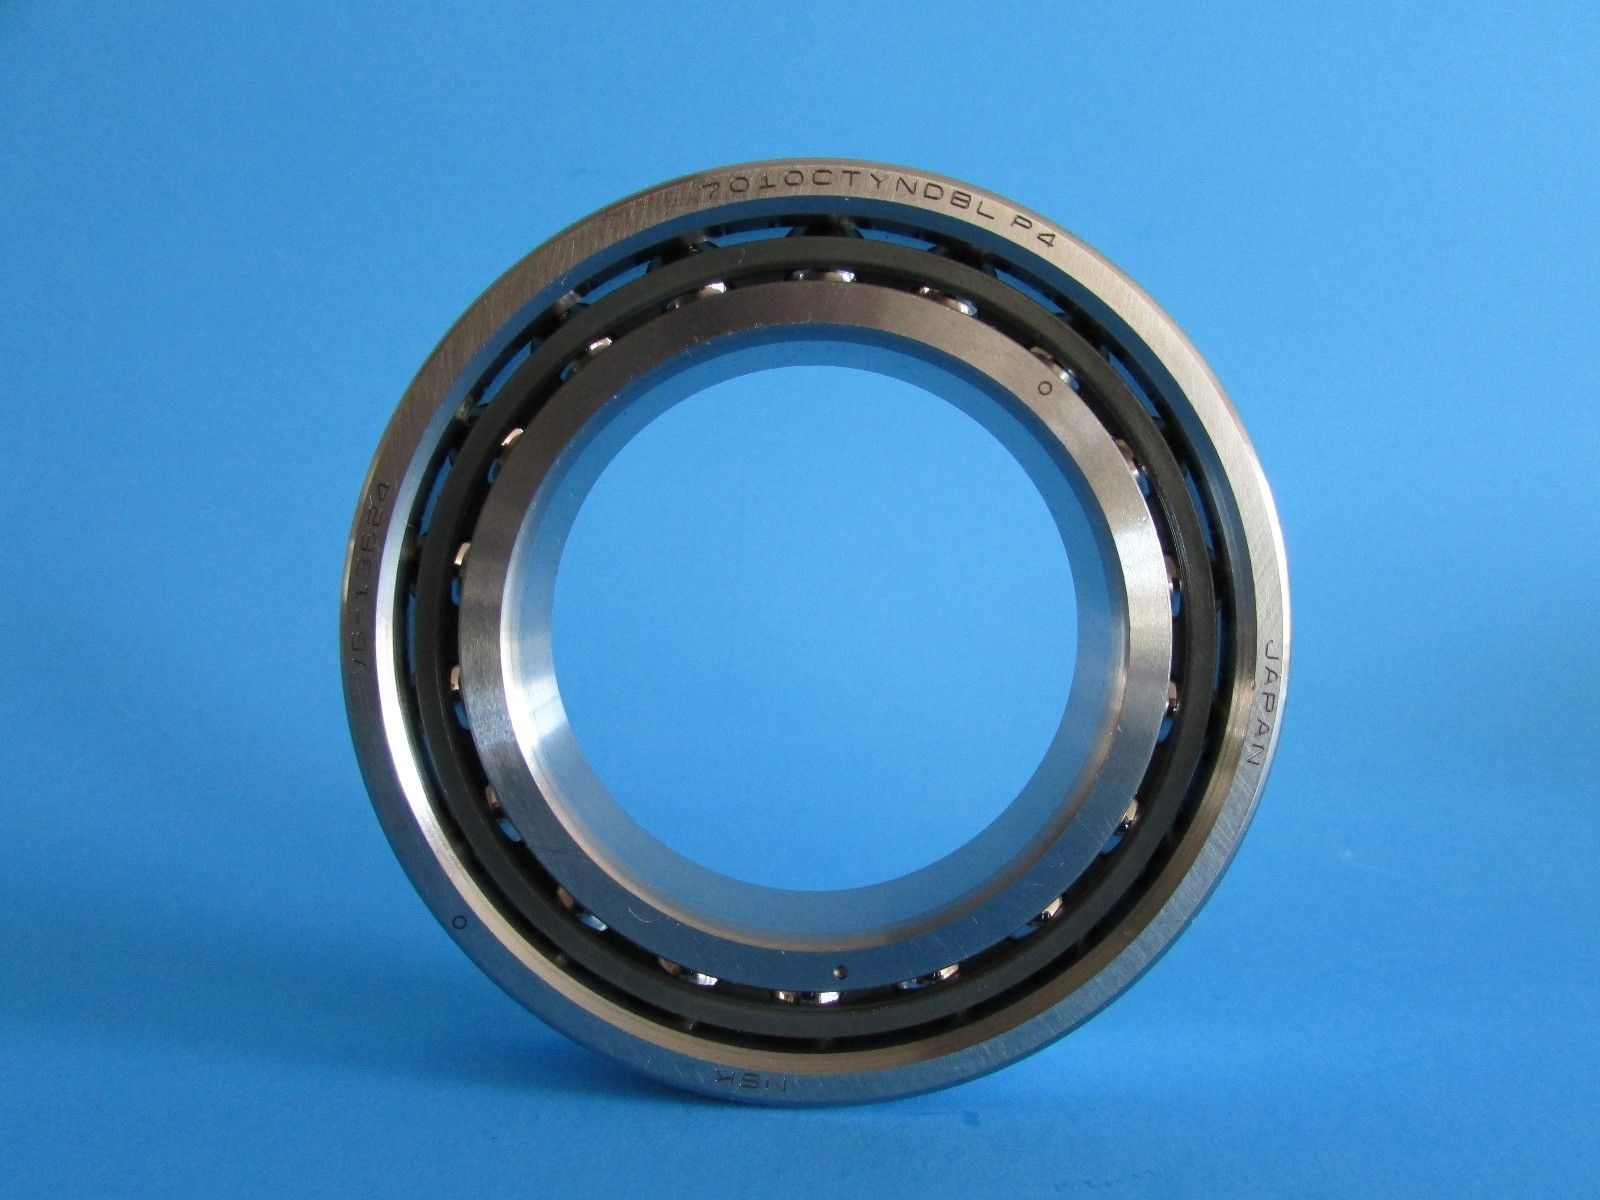 high temperature NSK7010CTYNDBL P4 Abec-7 Super Precision Angular Contact. can be match to pair